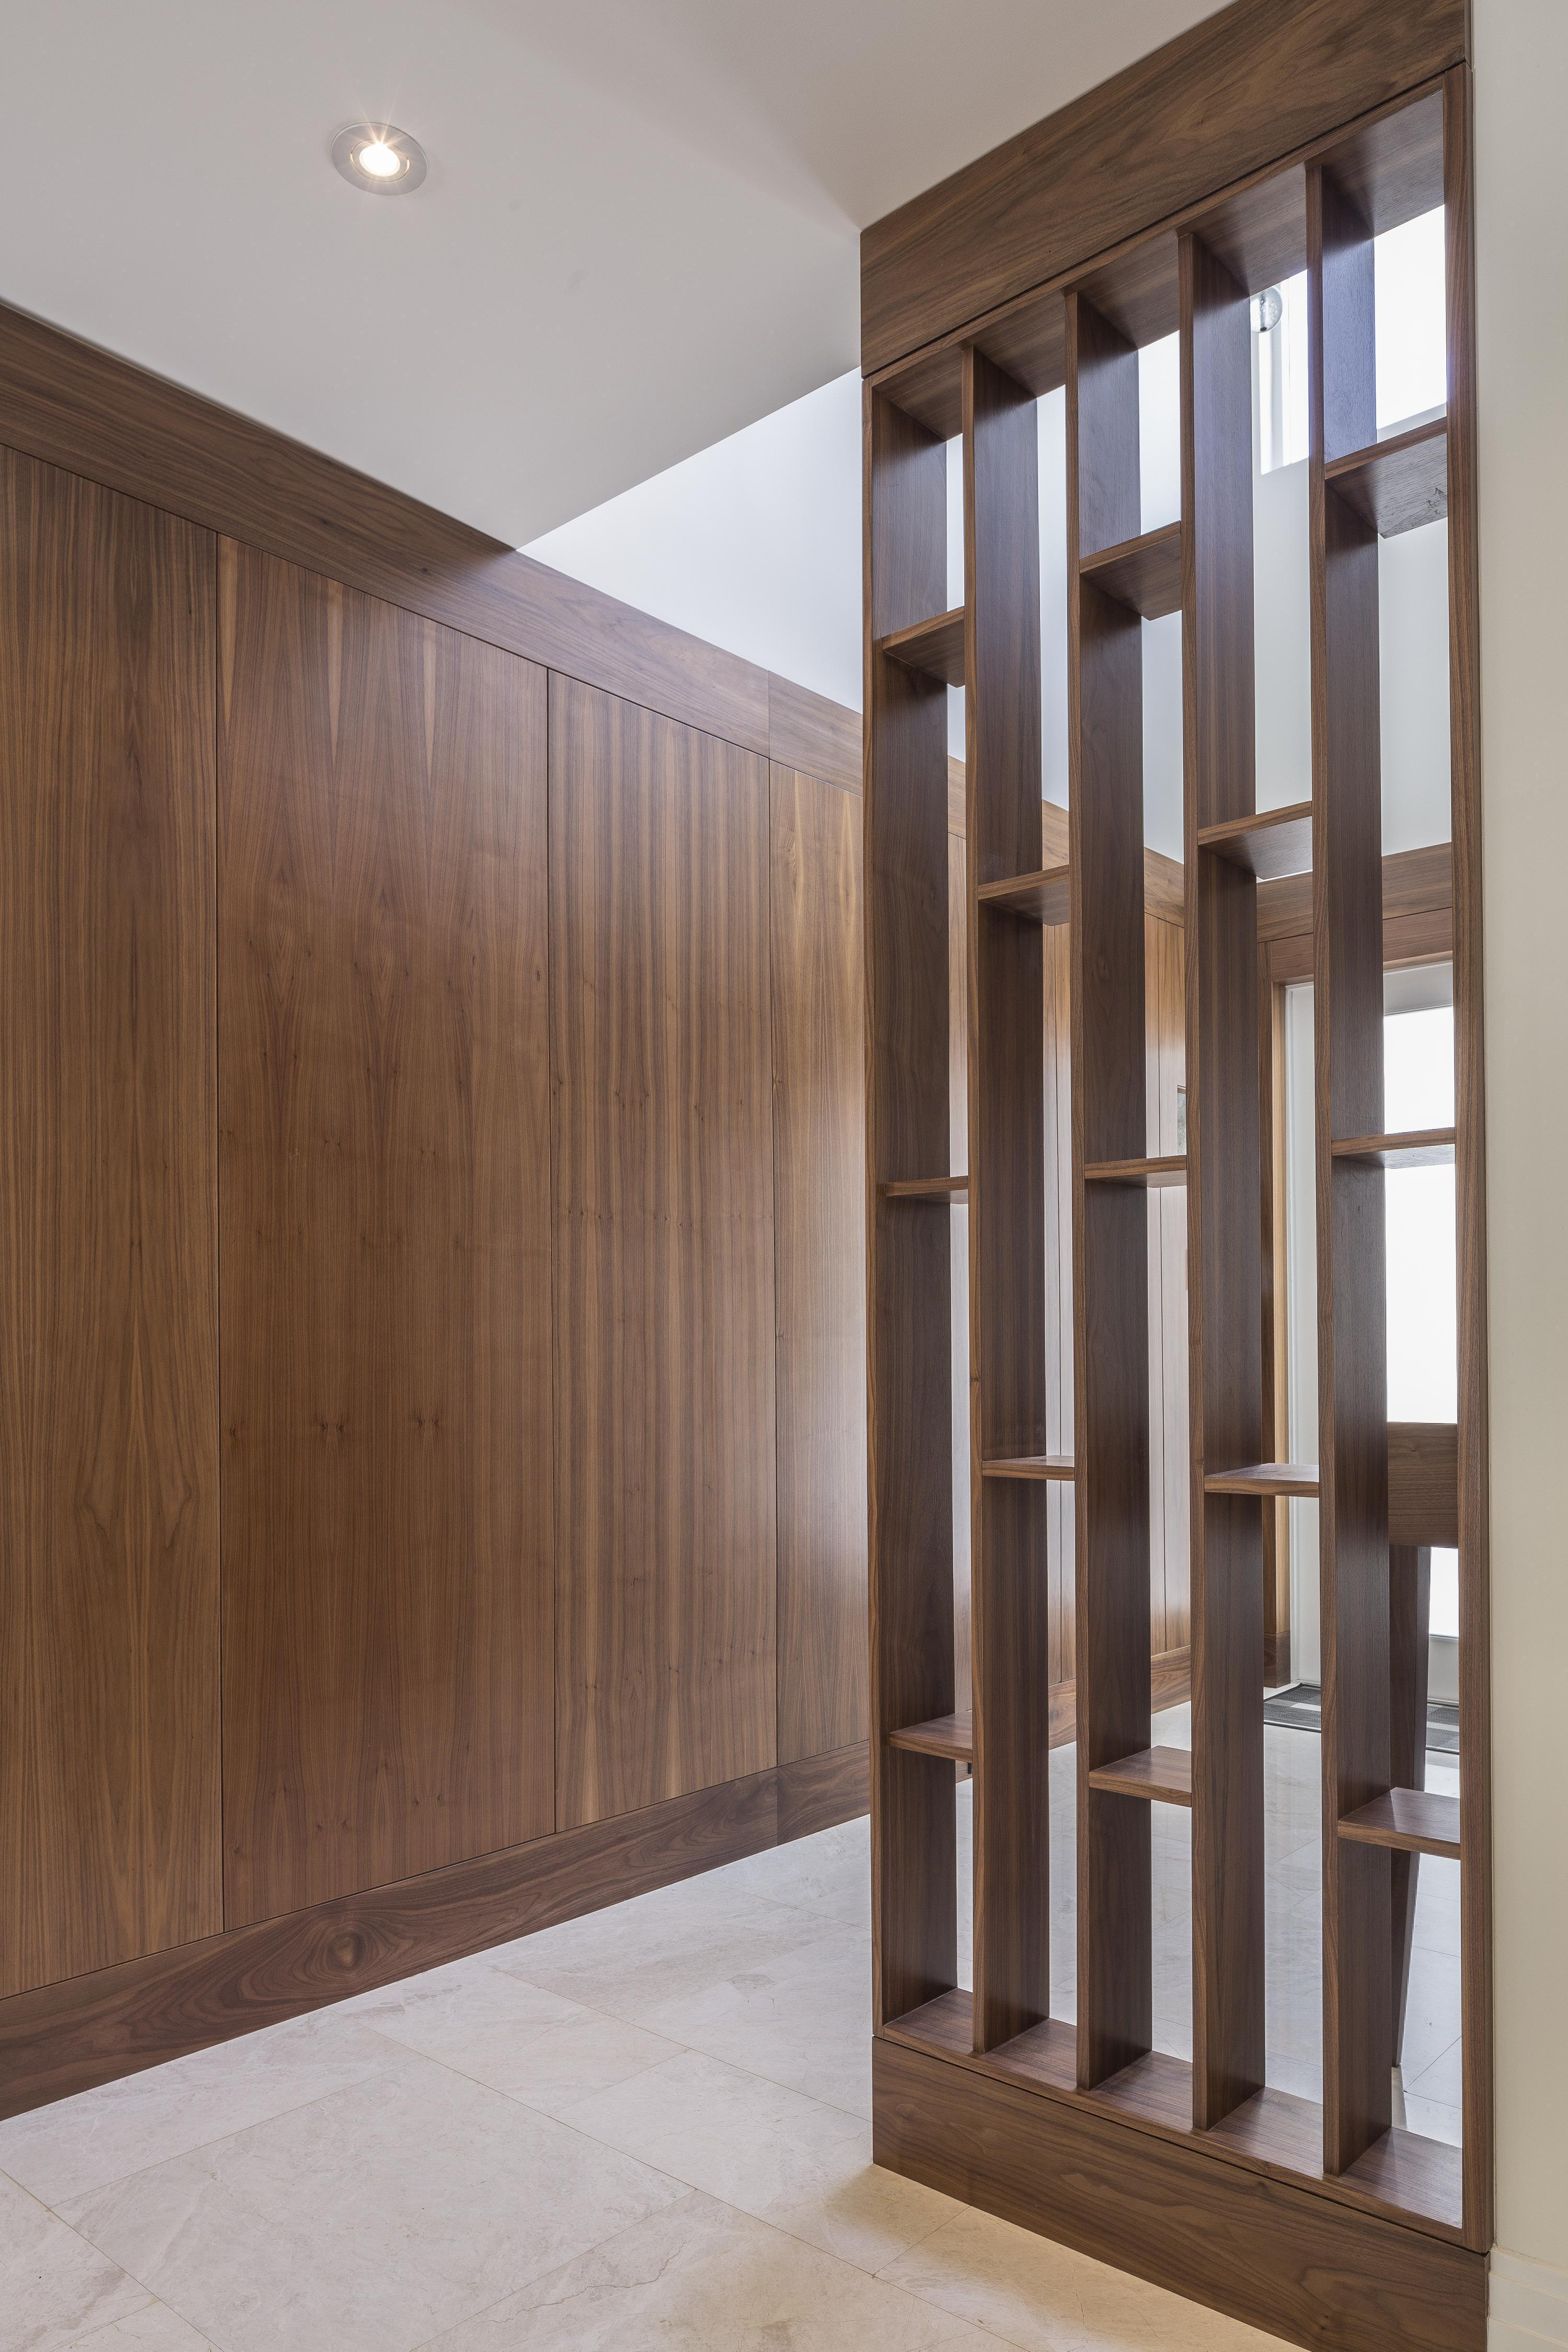 Opposite view of the hallway, showing angular, detailed dividing structure and lush floor to ceiling wood paneling.